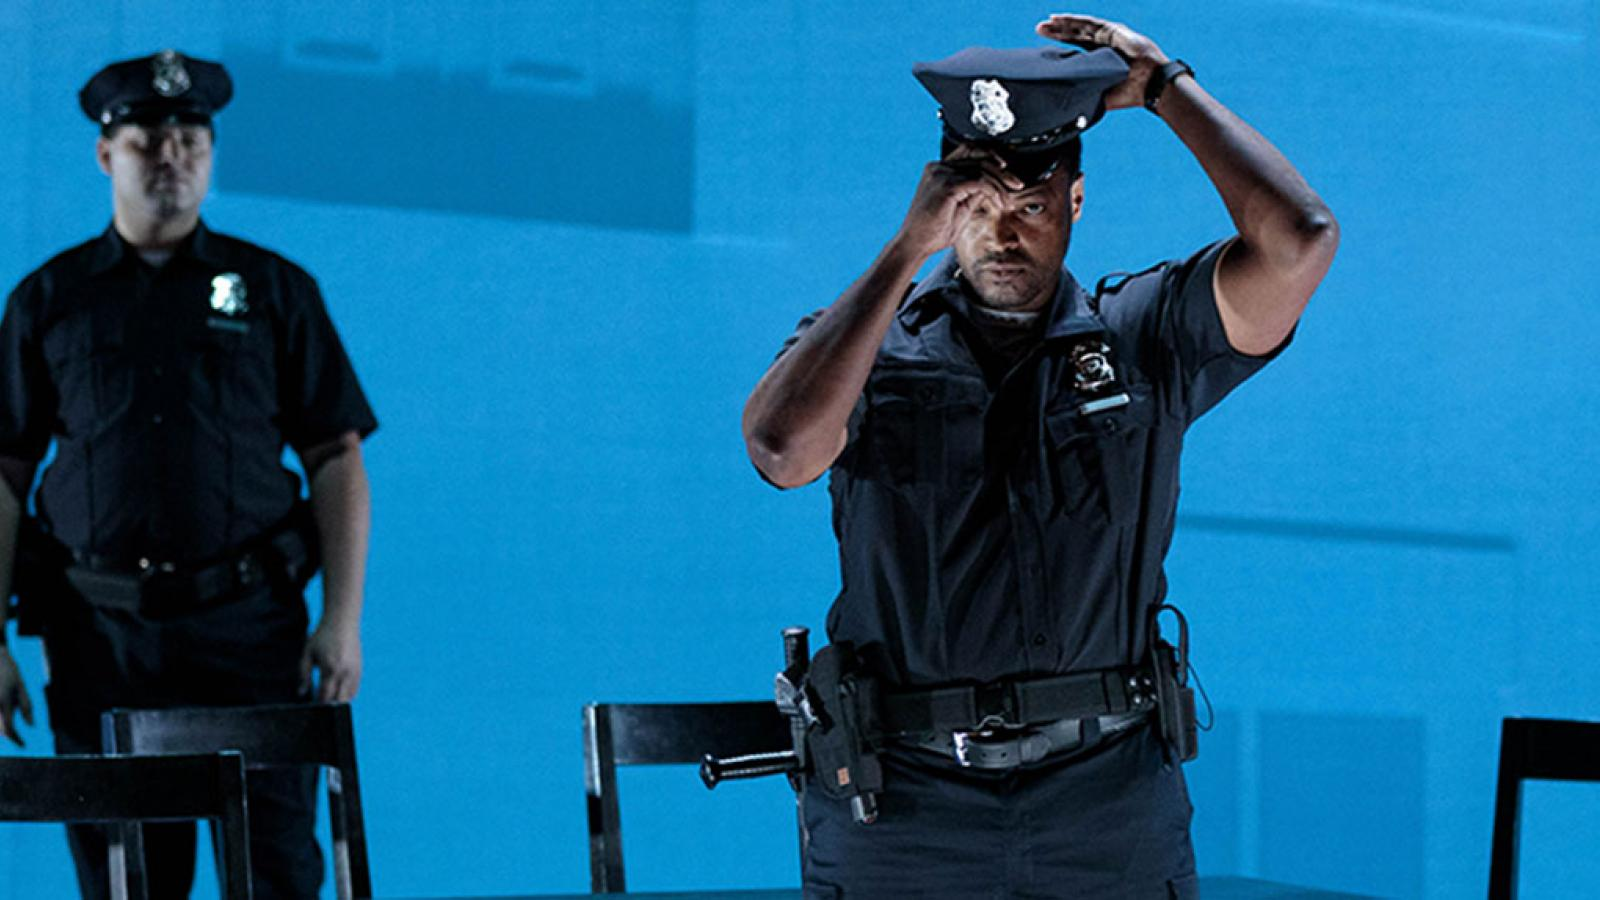 Lyric Opera's Blue image with two men dressed as police on stage